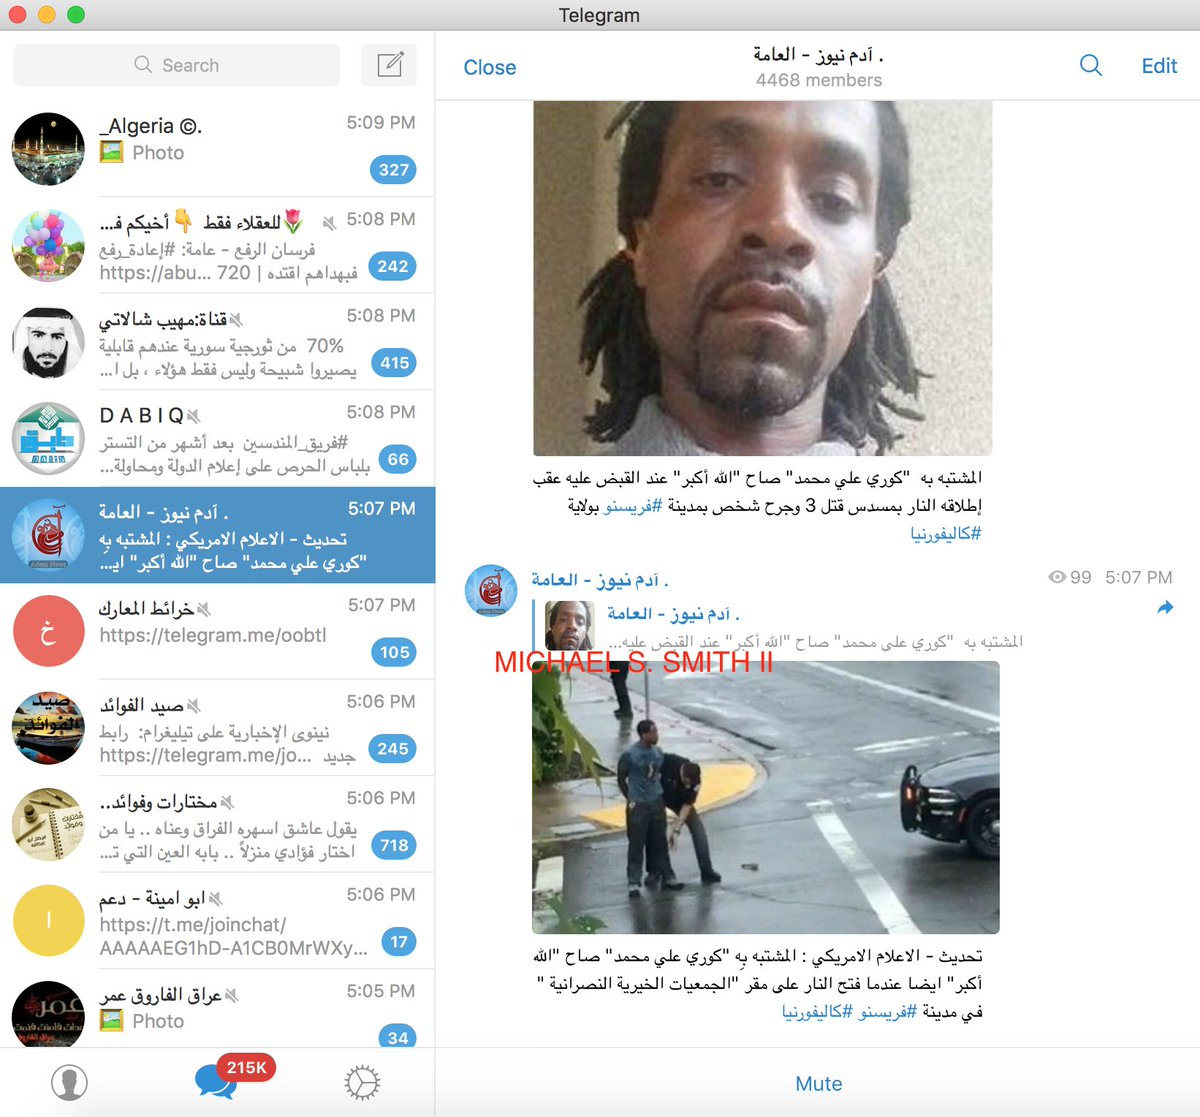 Here's another example of news spreading re possible terrorist attack in Fresno California on key Islamic State-linked Telegram channels